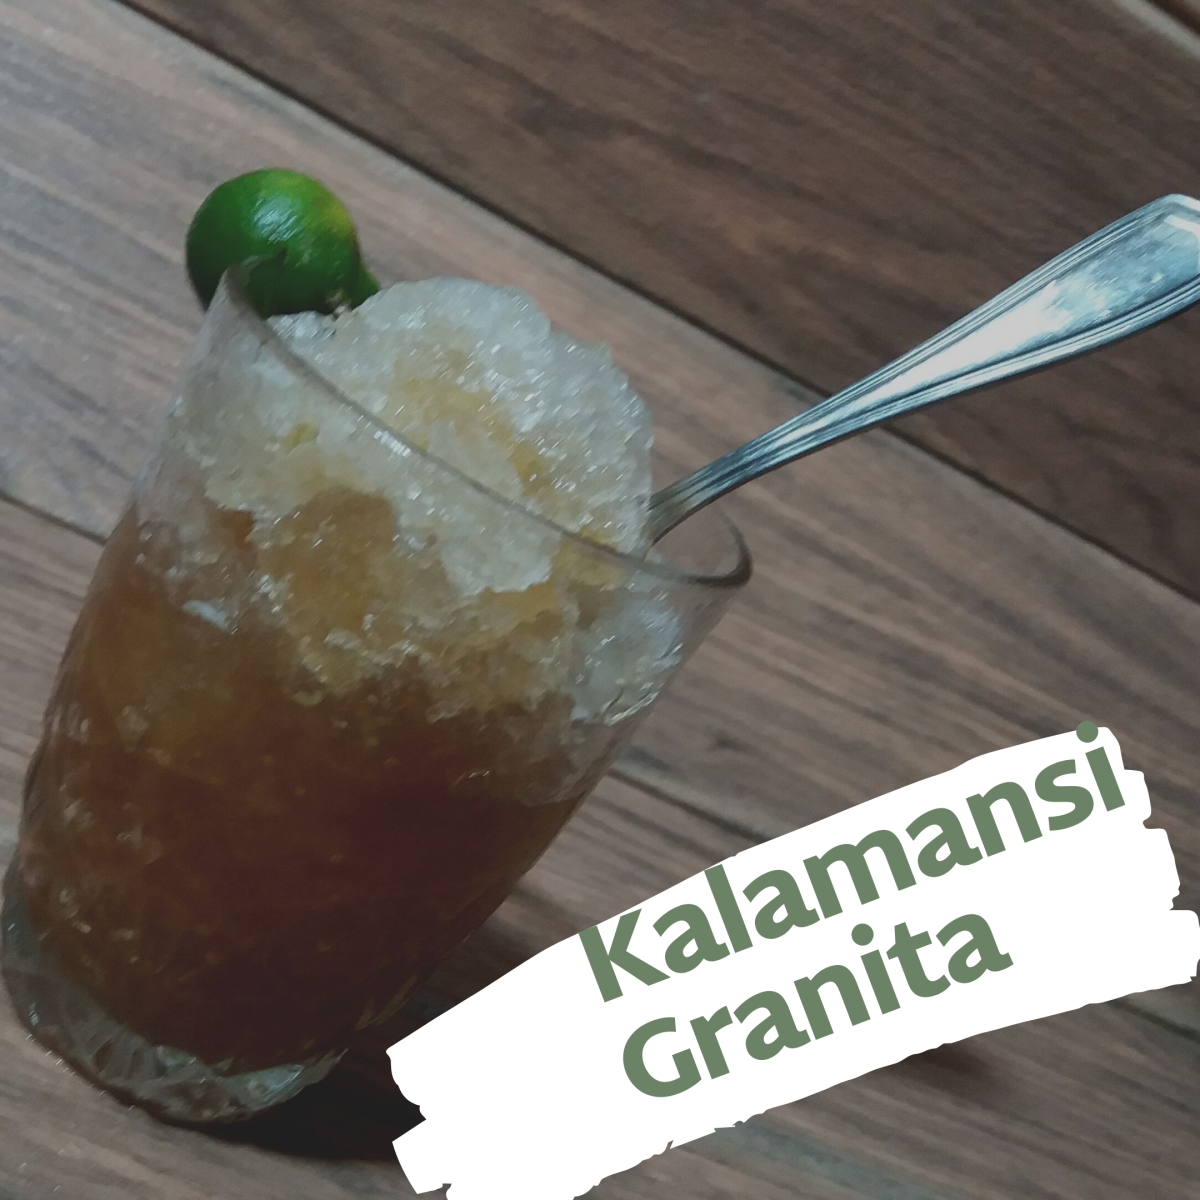 Learn how to make a refreshing kalamansi granita